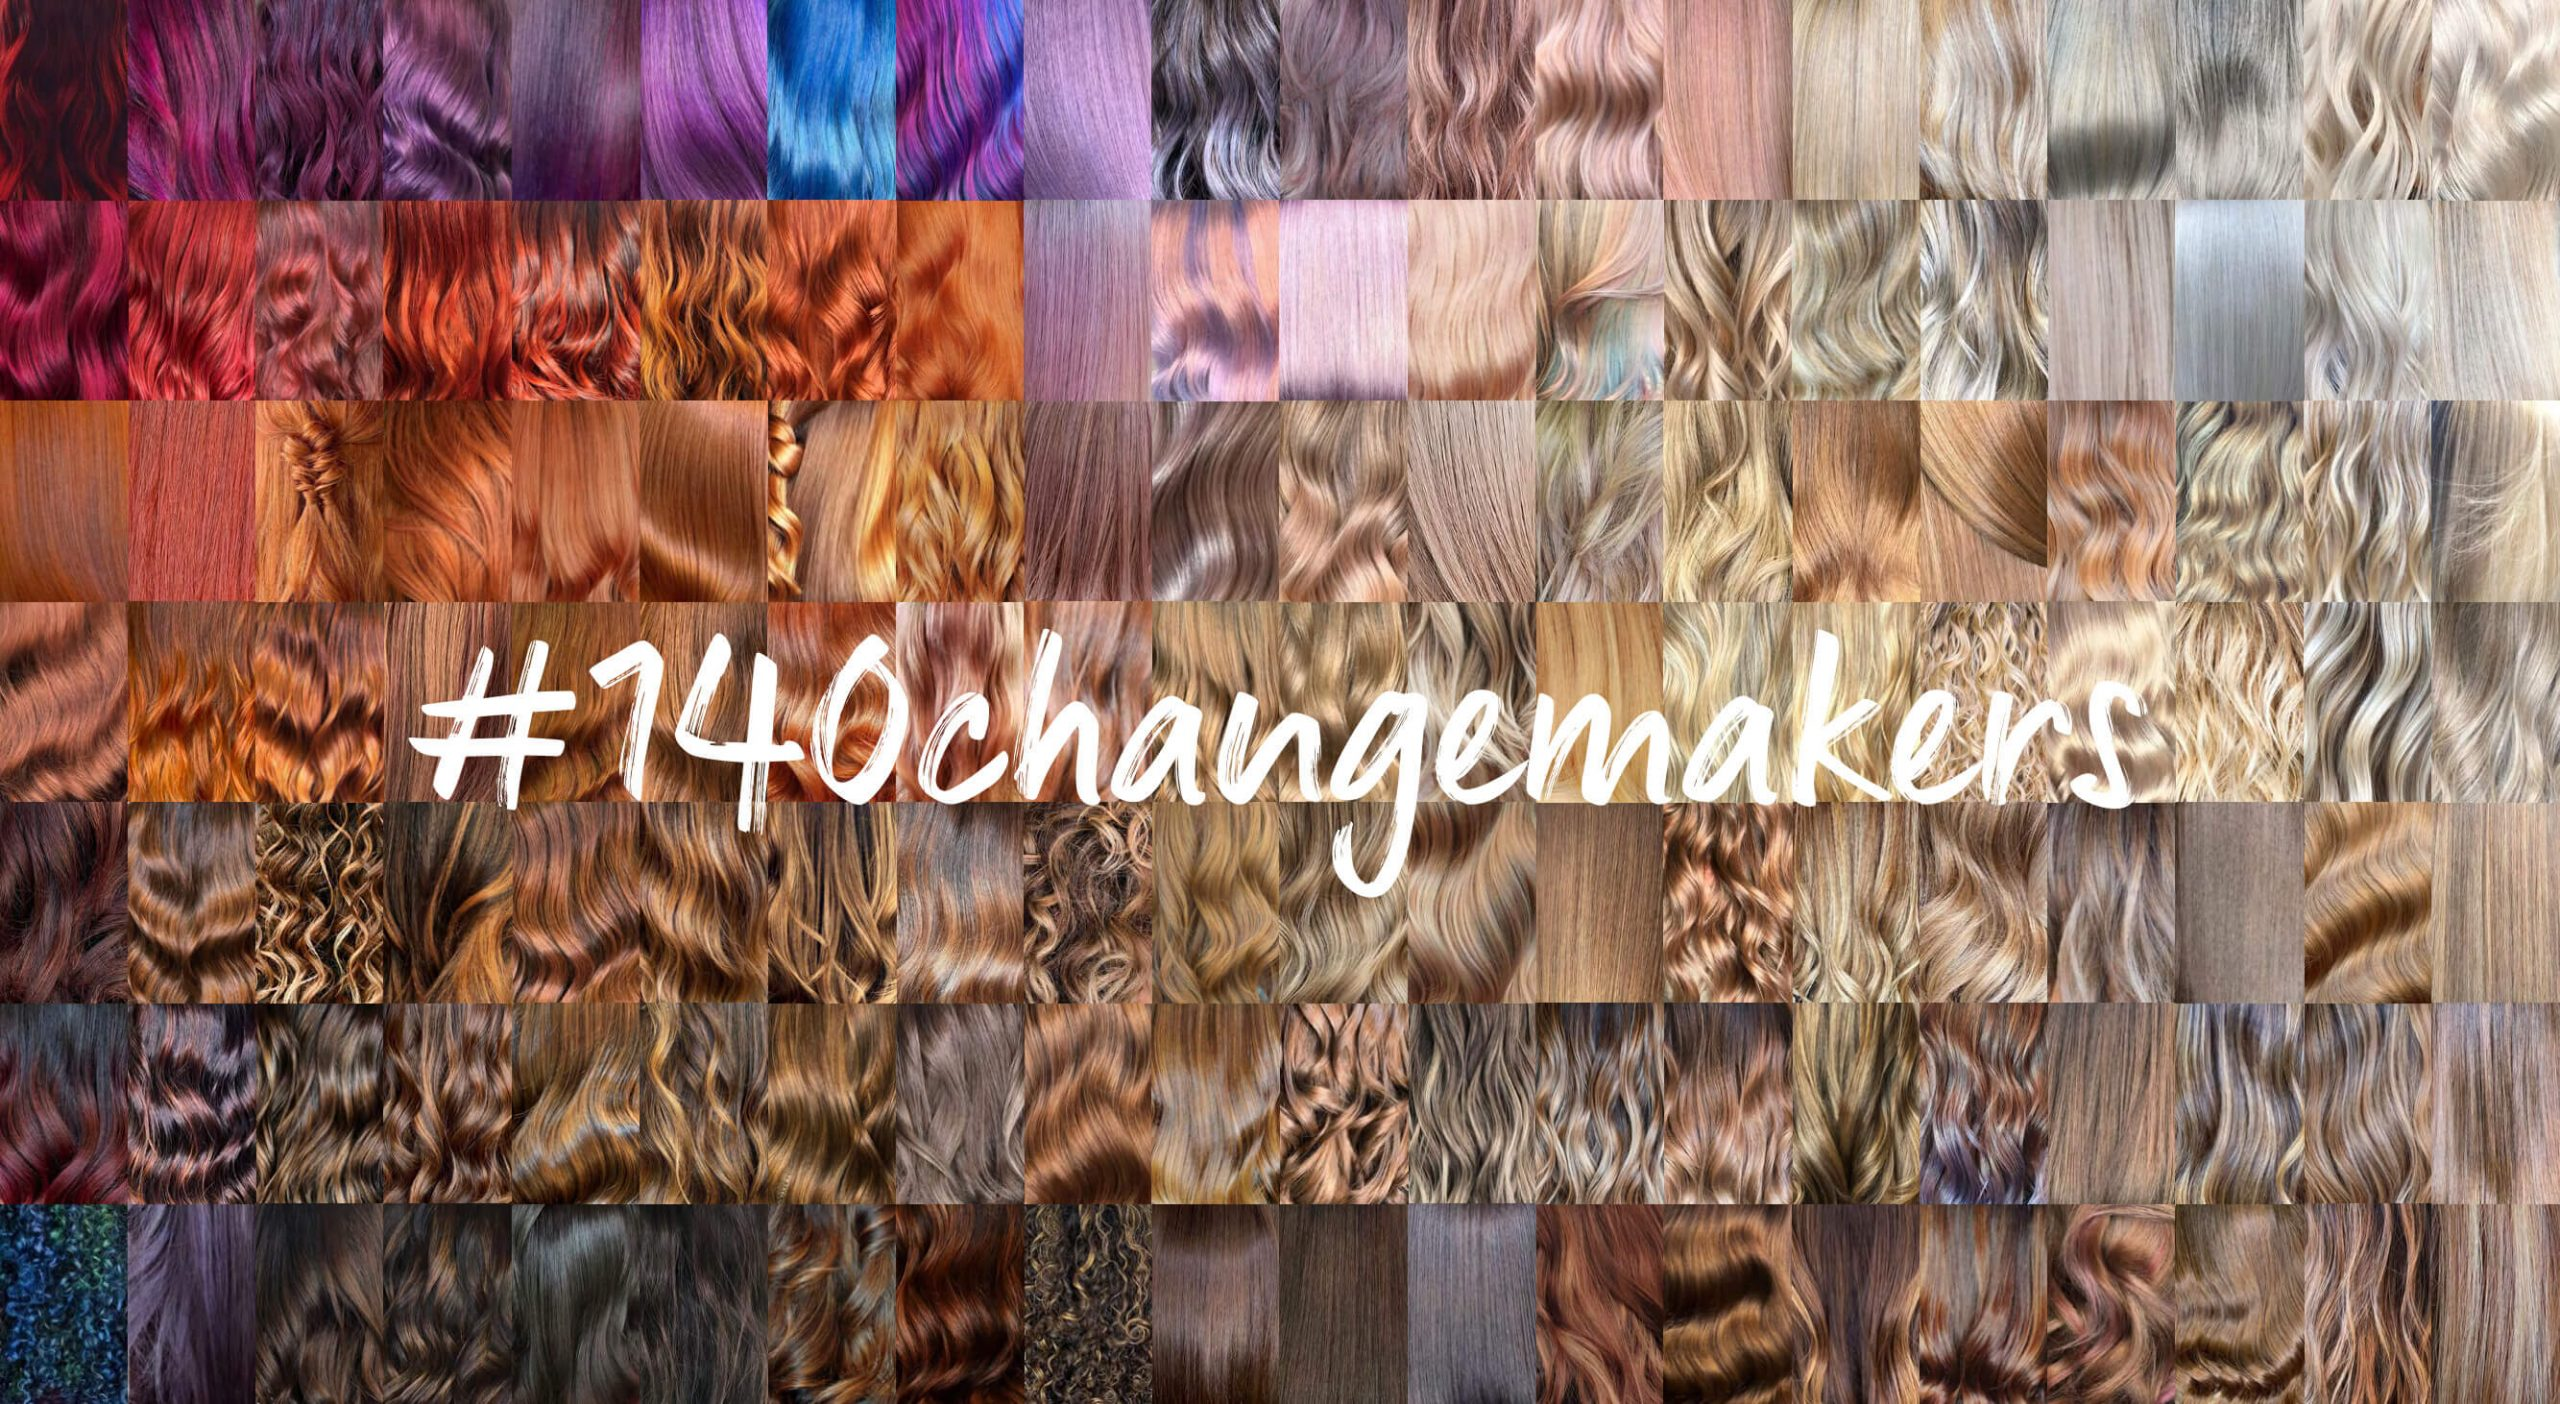 JPG HighRes 140changemakers Reveal Mosaic 640px x 351px with tagline 1 scaled